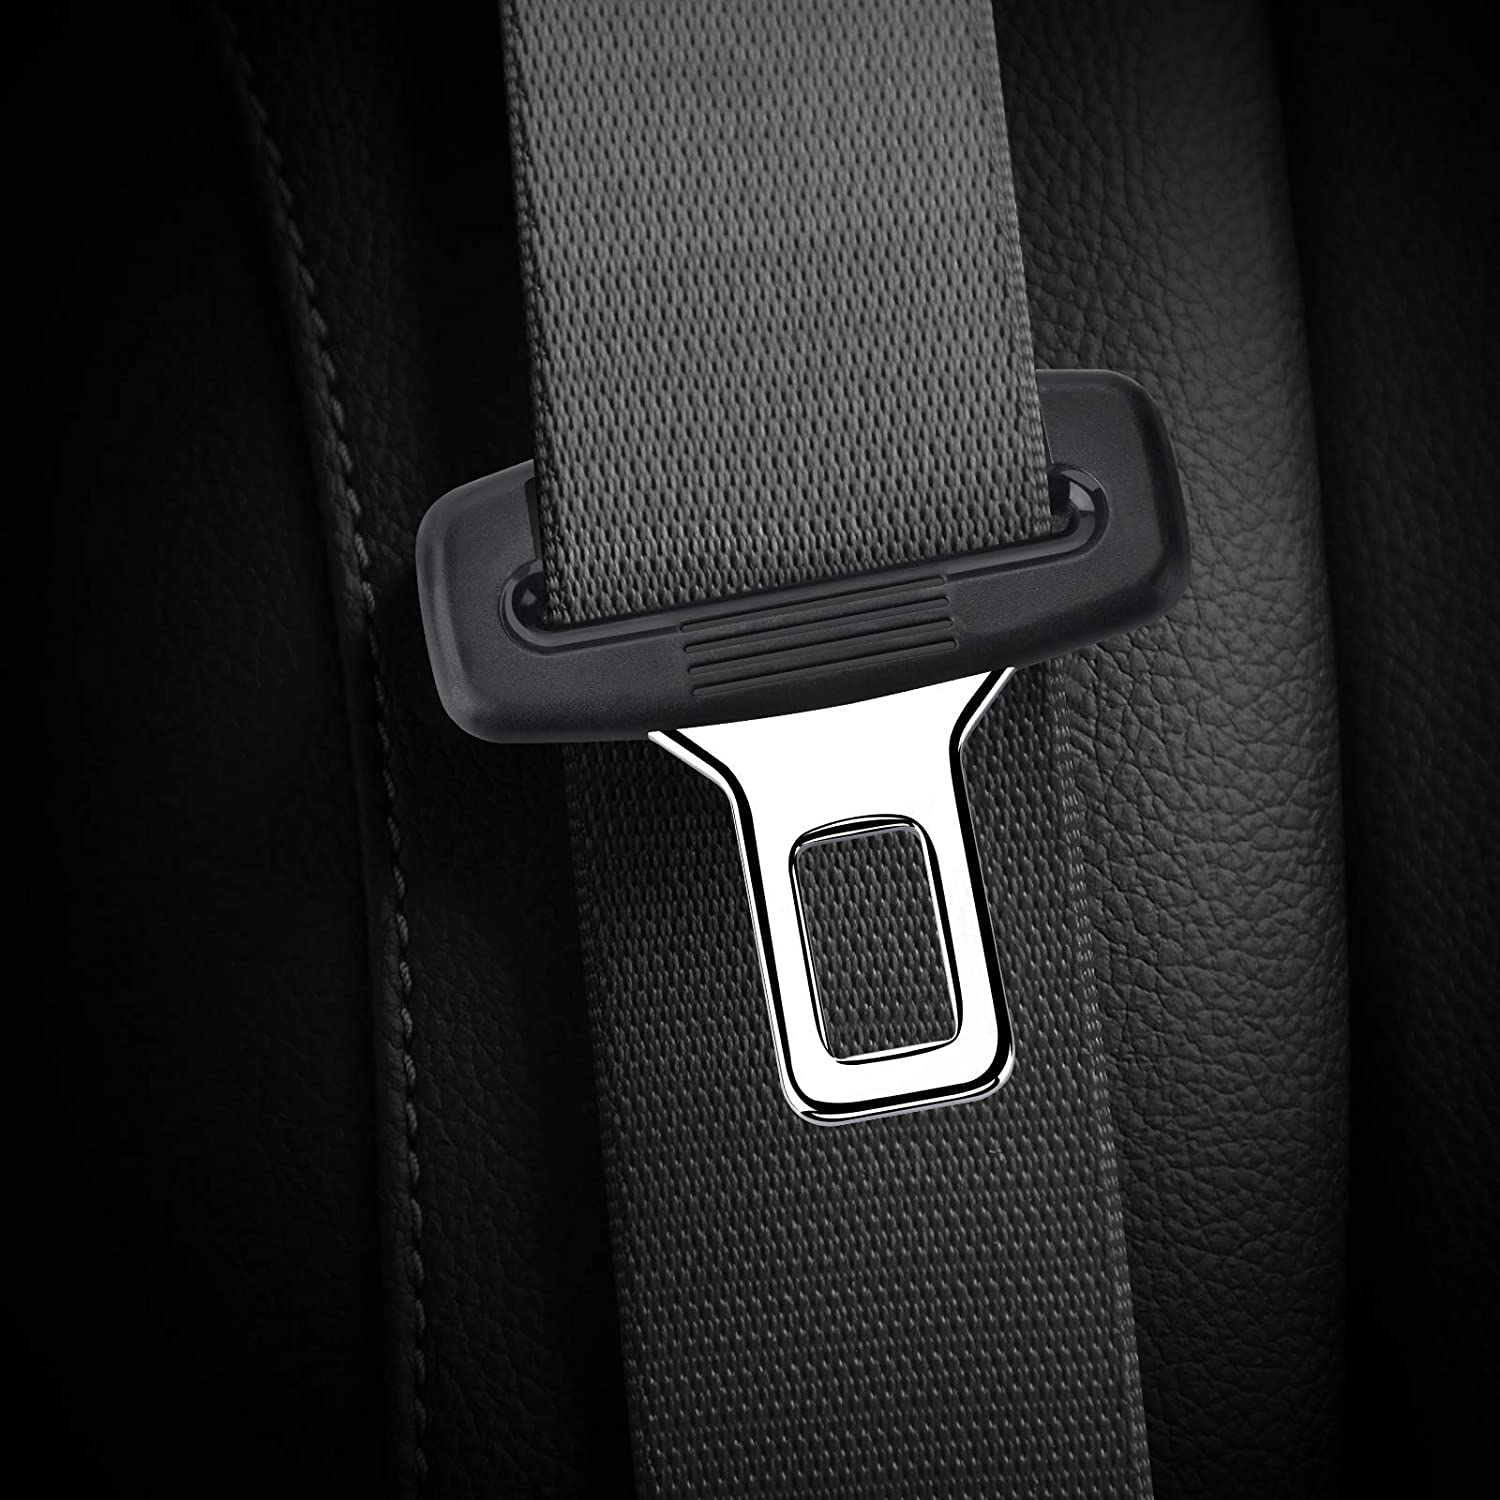 2 Pcs Car Seat Belt Clips Seat Belt Adjuster for Kids/&Adults Black Auto Metal Seat Belts Clips Universal for Most Vehicles